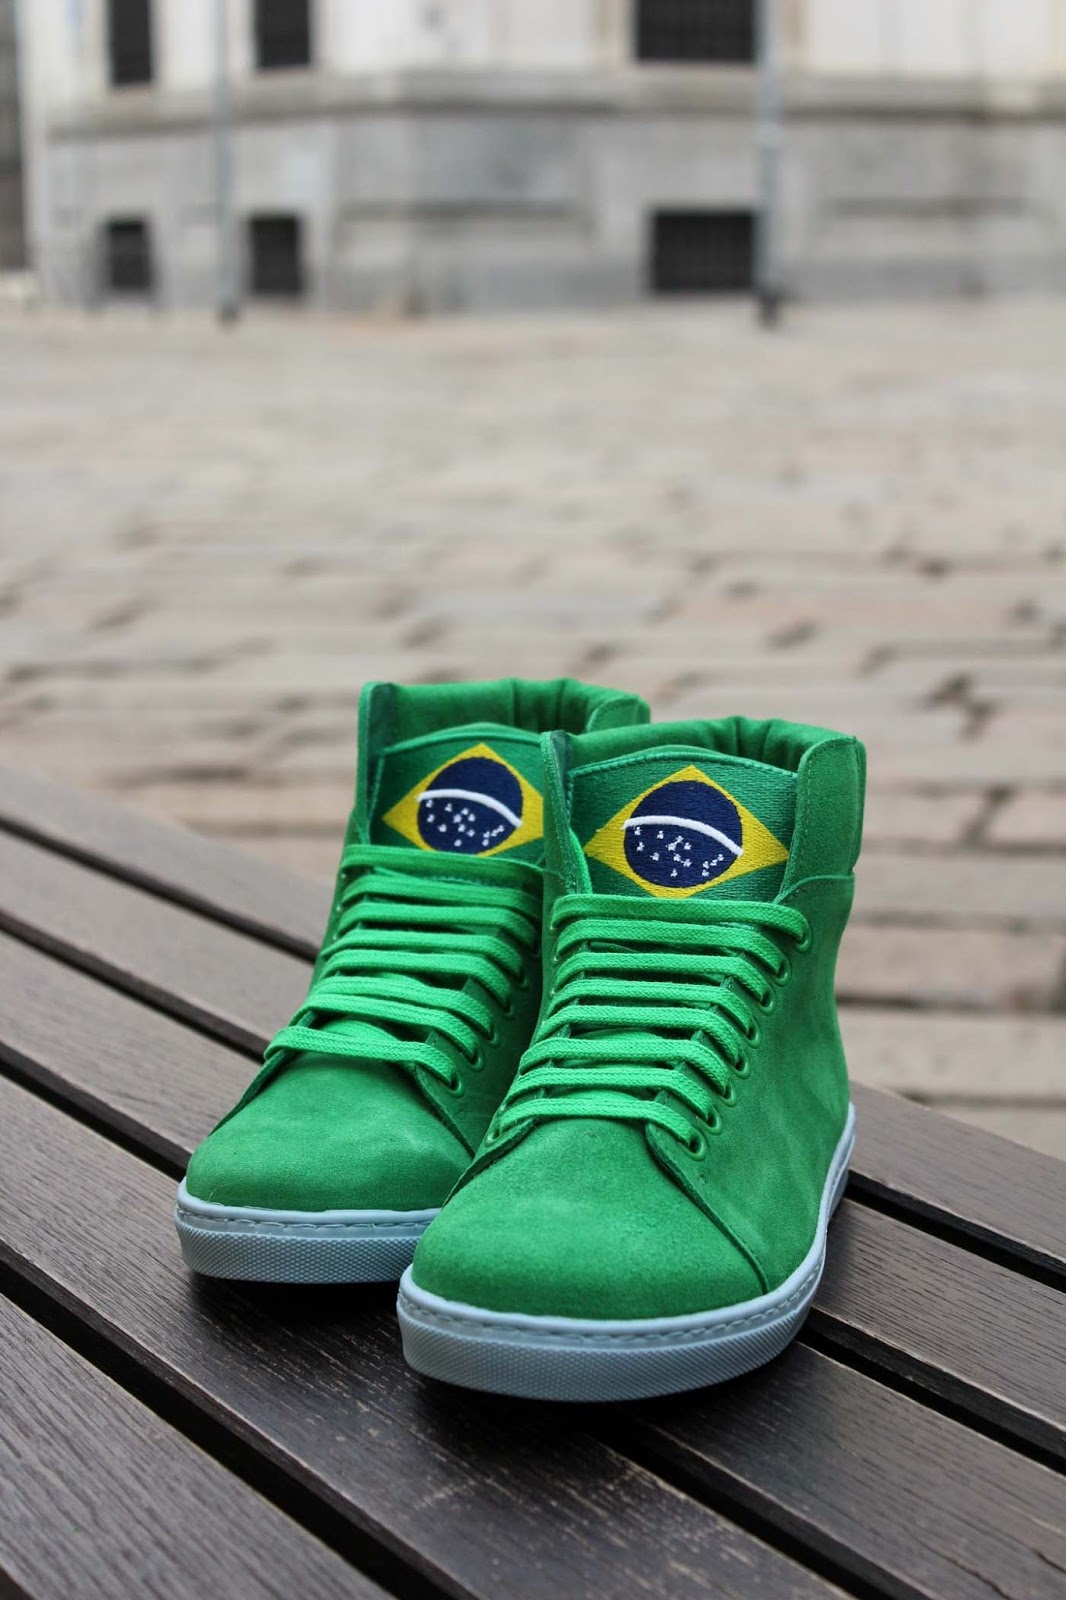 Eniwhere Fashion - sneakers - NewYorkinas Originals